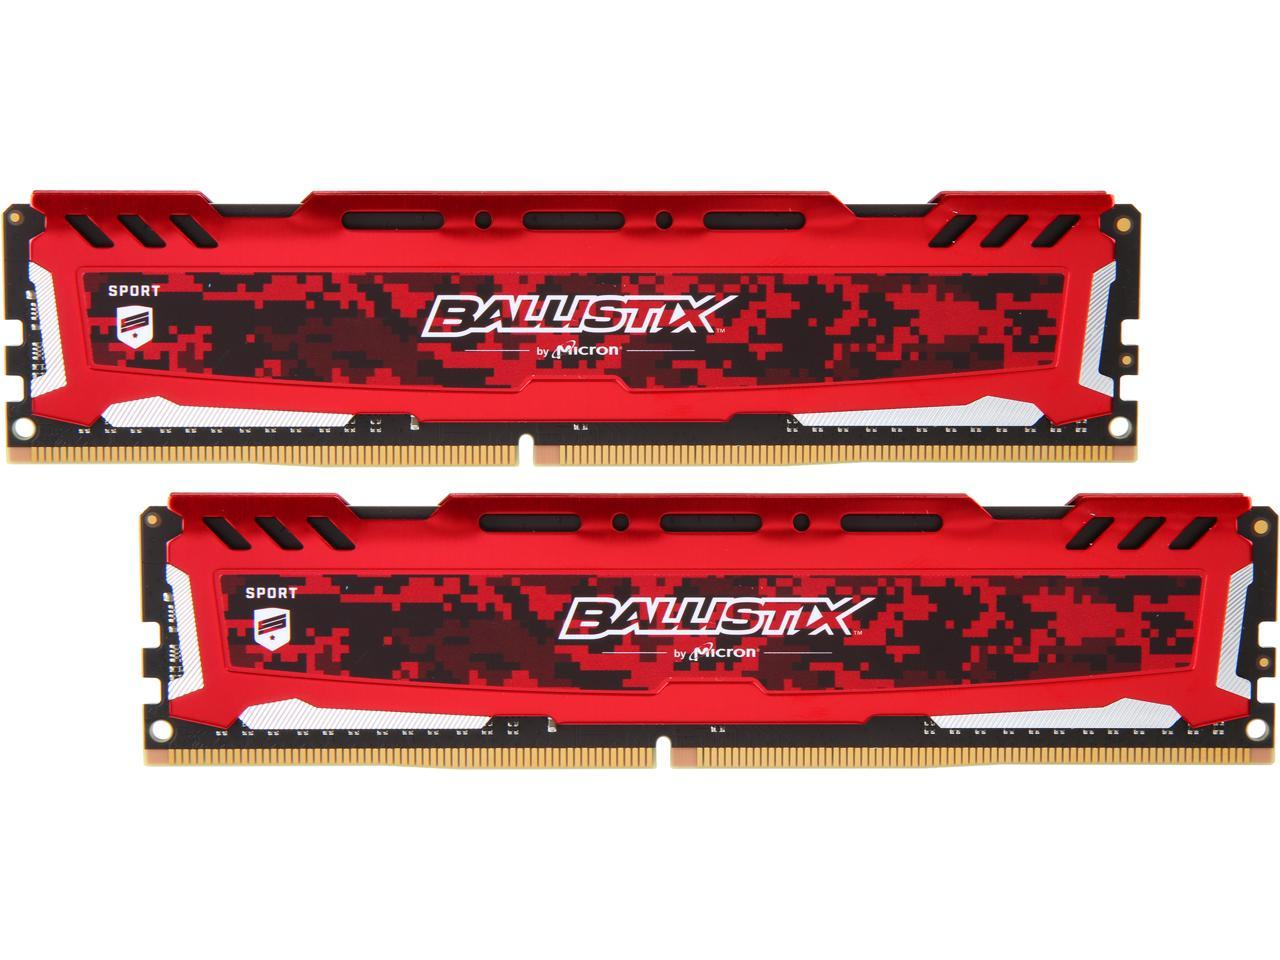 Ballistix BLS2K8G4D32AESEK 16GB (2 x 8GB) PC4-25600 3200MHz DDR4 288-Pin DIMM Desktop Memory (Red)